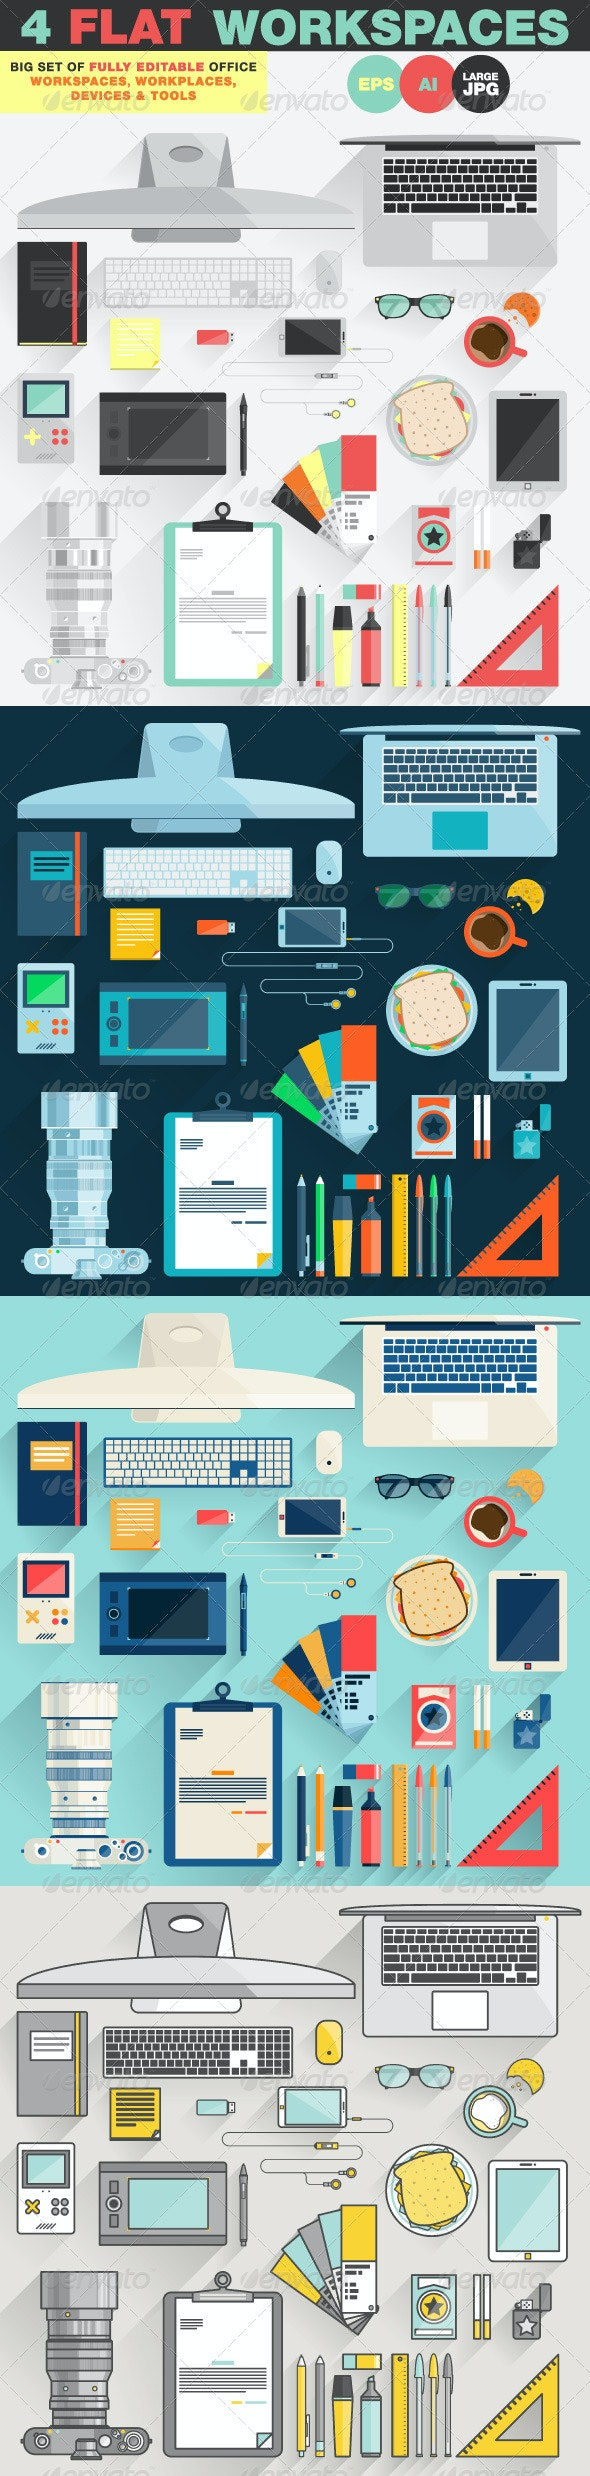 Office Workspace, Workplace Flat Design Concept - Objects Vectors